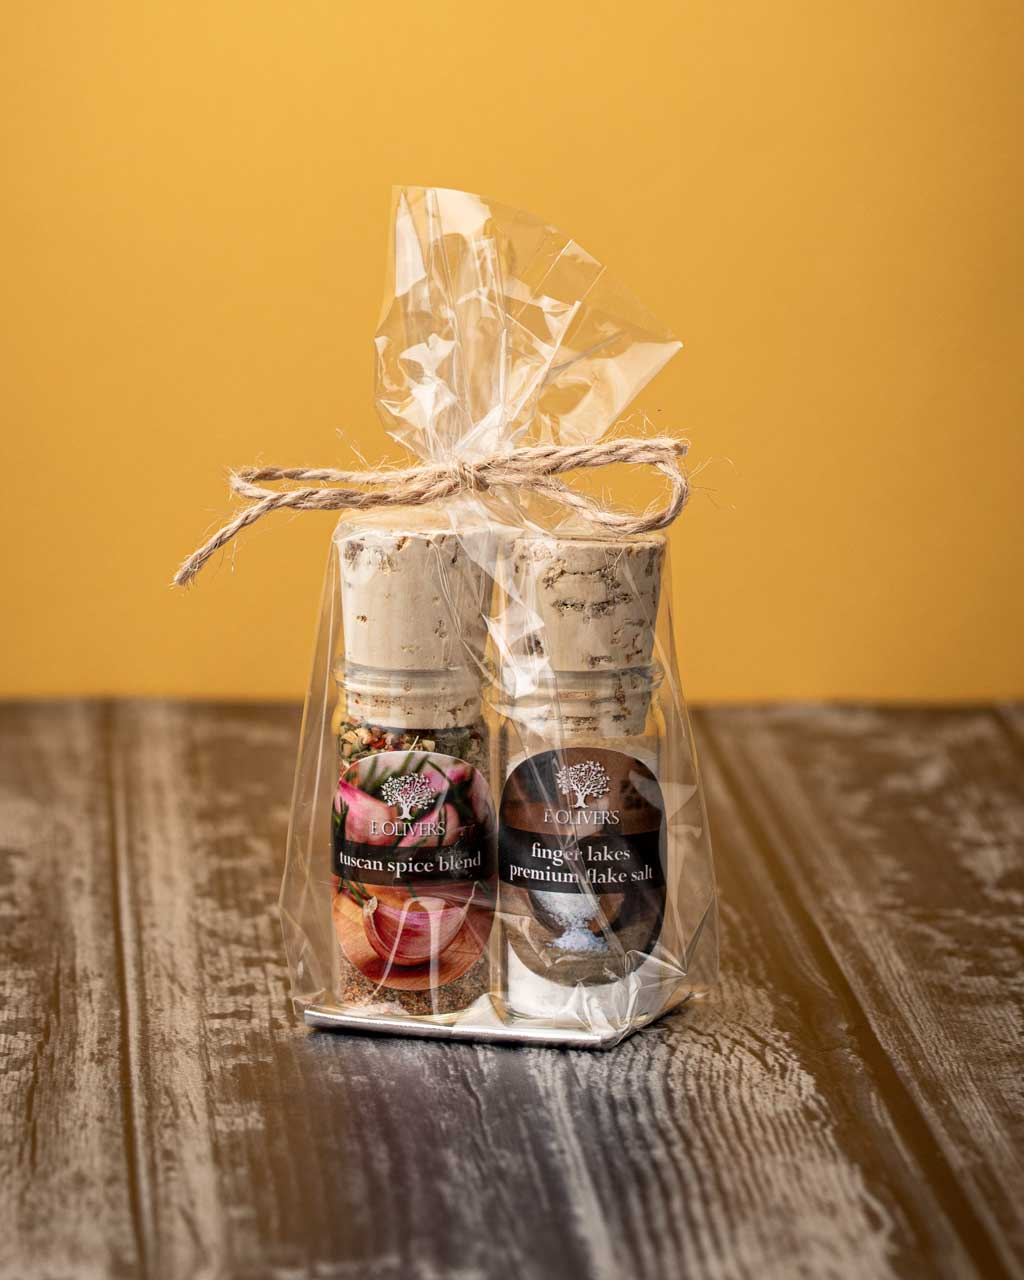 F. Oliver's Spice Blend and Salt Wedding Favors